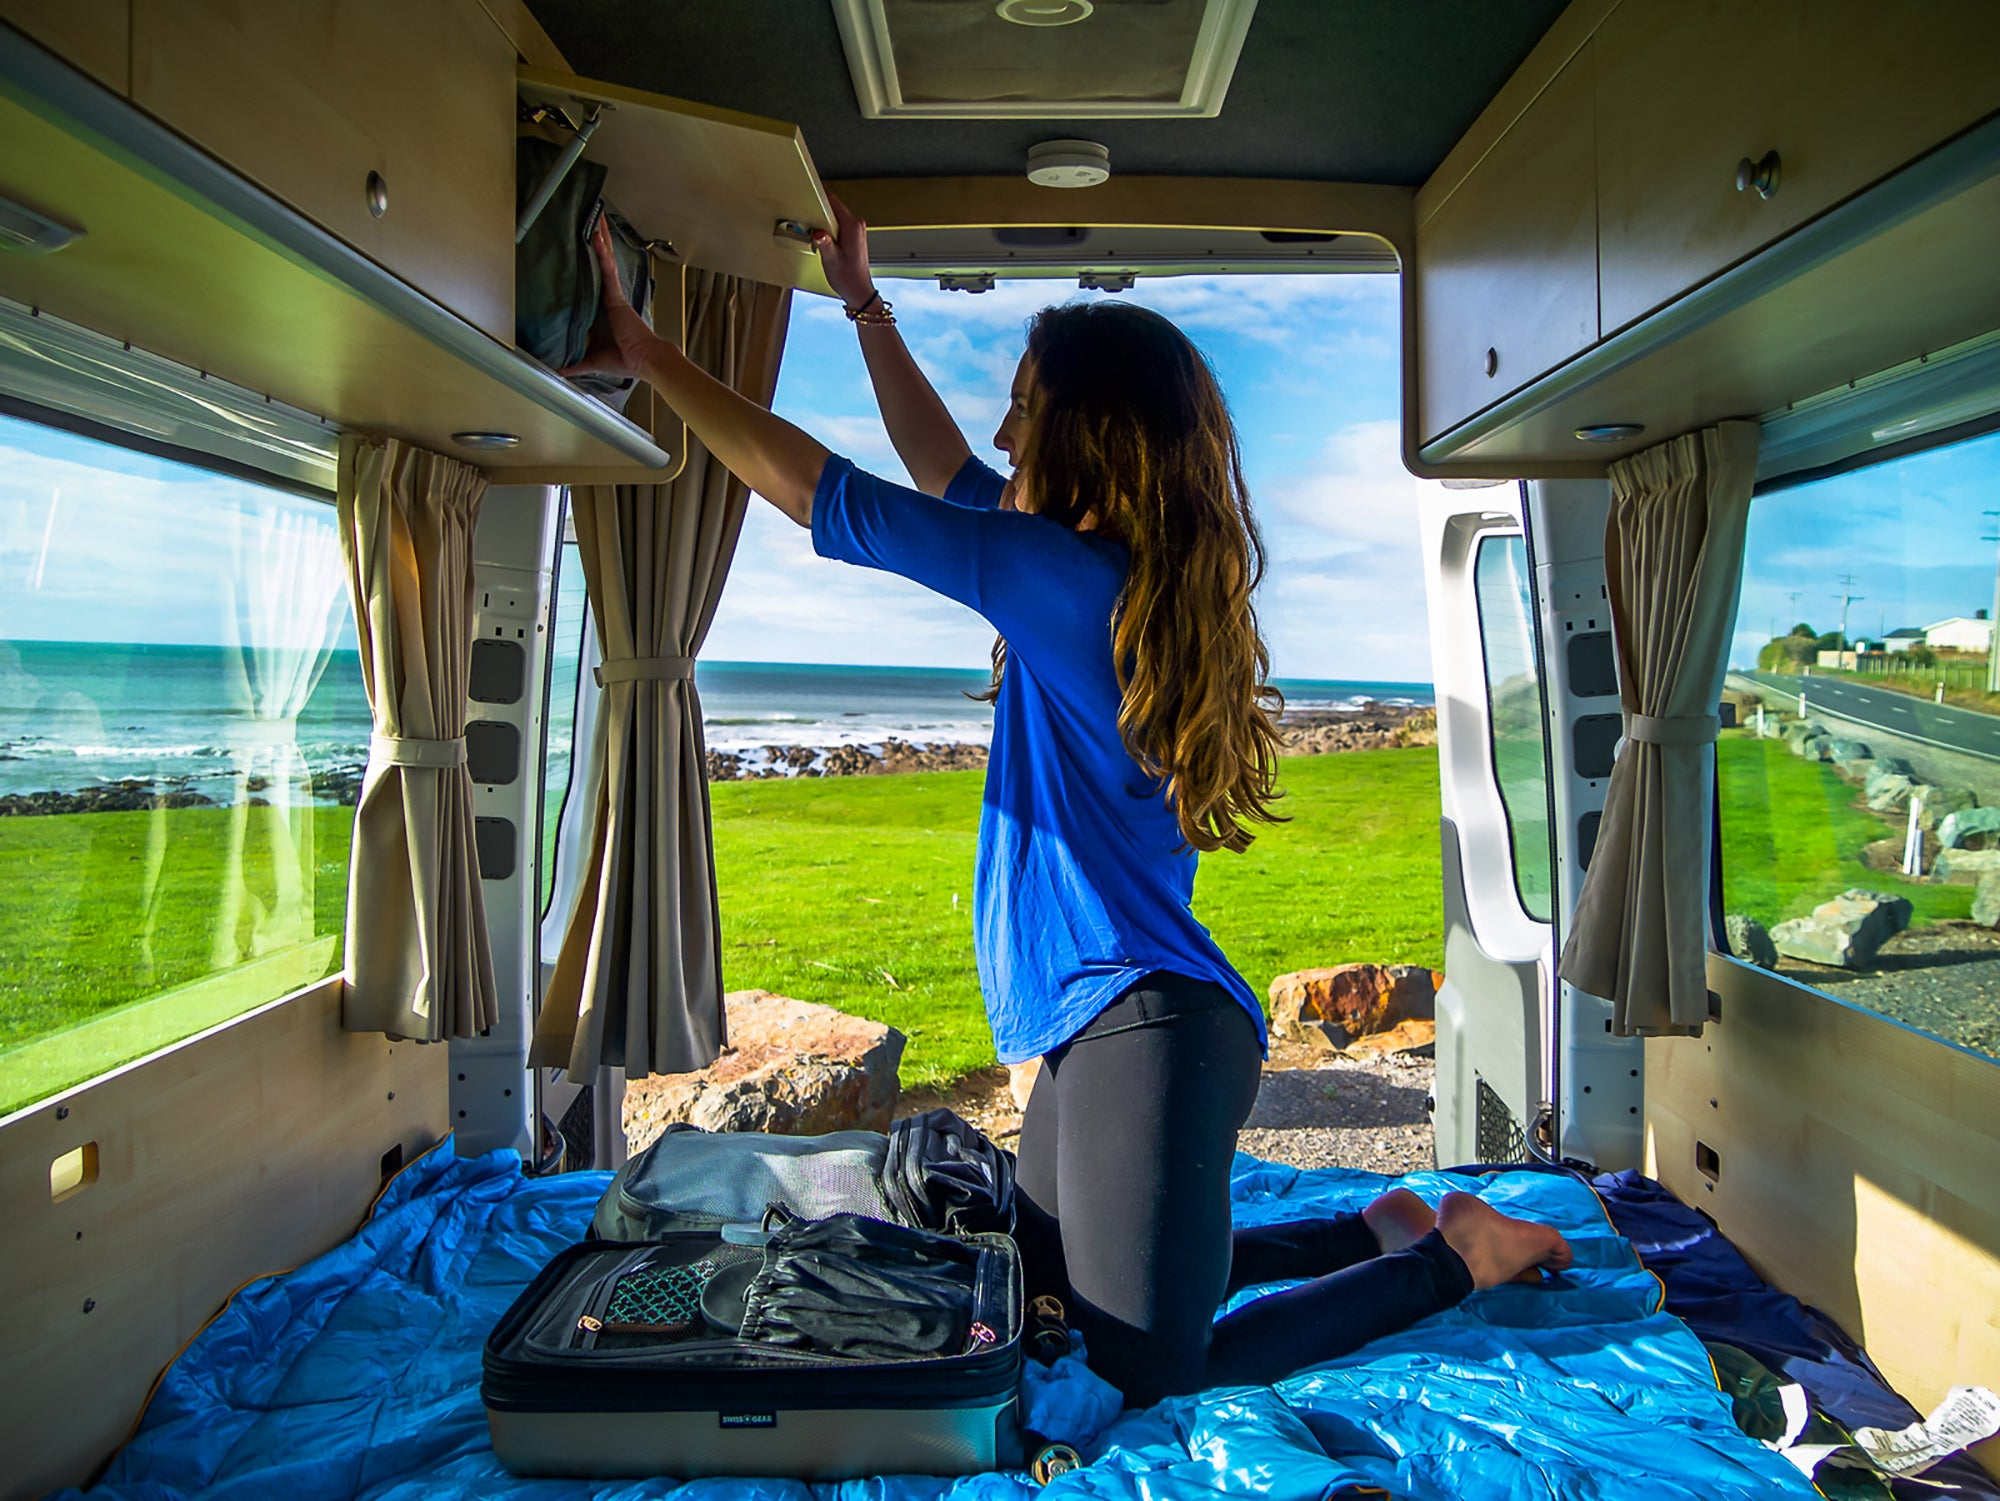 The Stuff Nobody Tells You About #VanLife